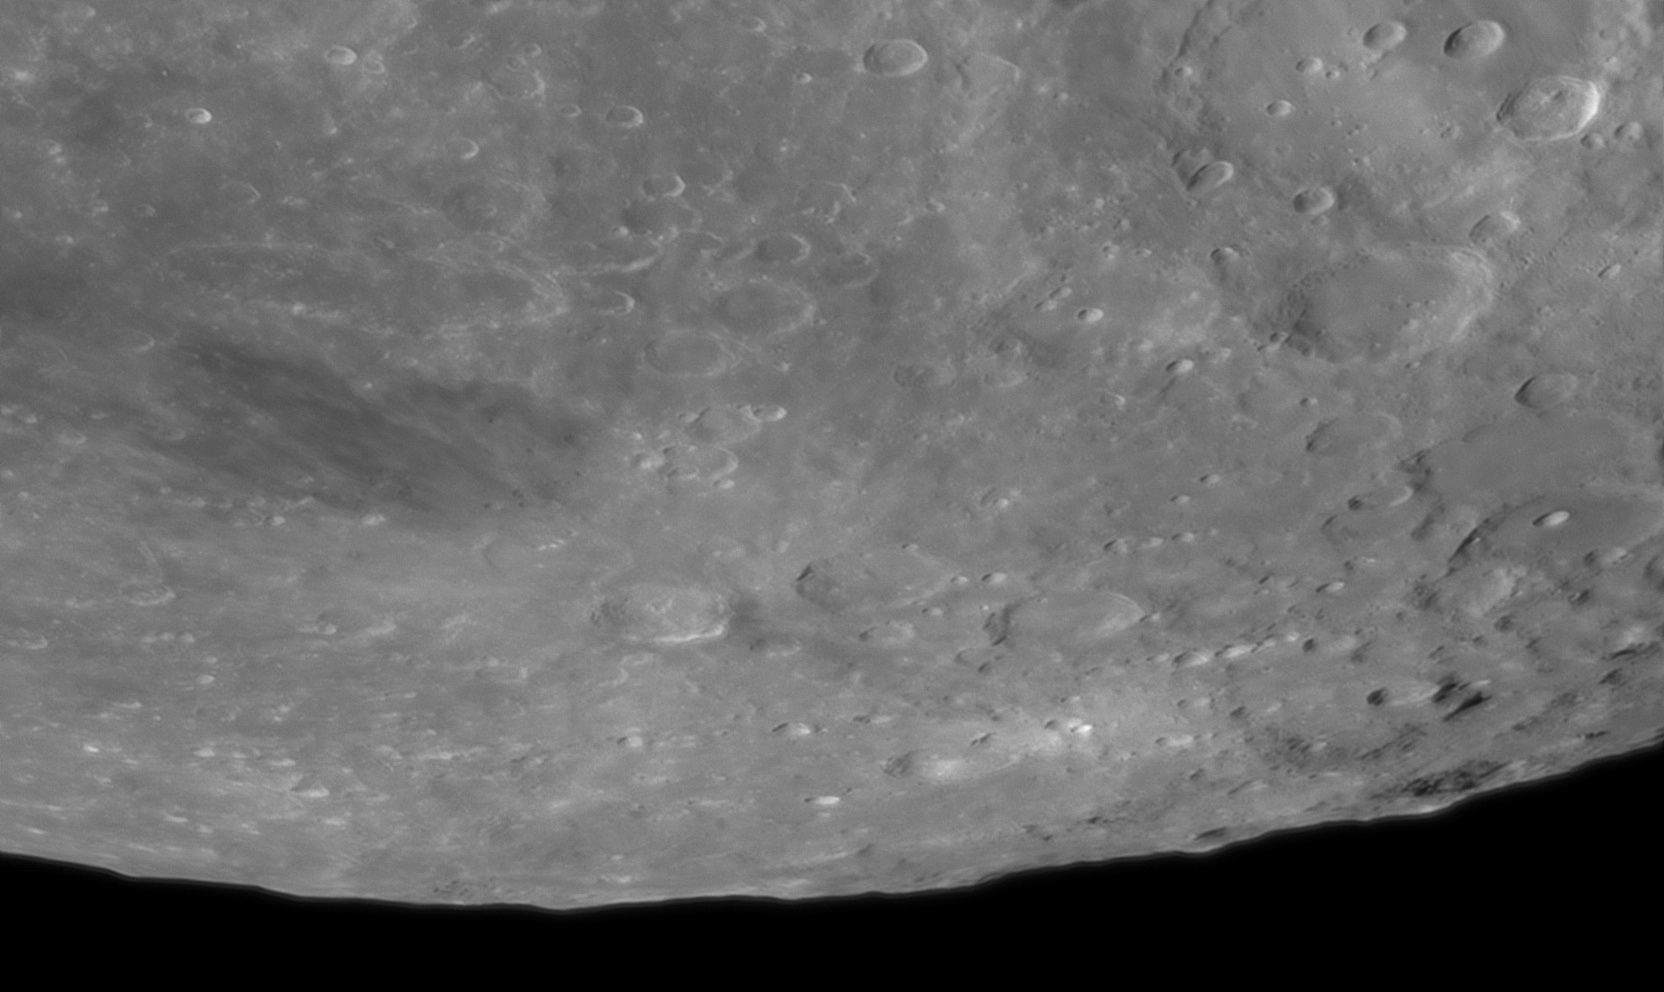 5e56ca0ad9173_Moon_060029_120220_ZWOASI290MM_IR_742nm_AS_P30_lapl4_ap1082_AI_Deconvolution_4.jpg.6eb3cbd2c5c8ce54f9c034c068844e02.jpg